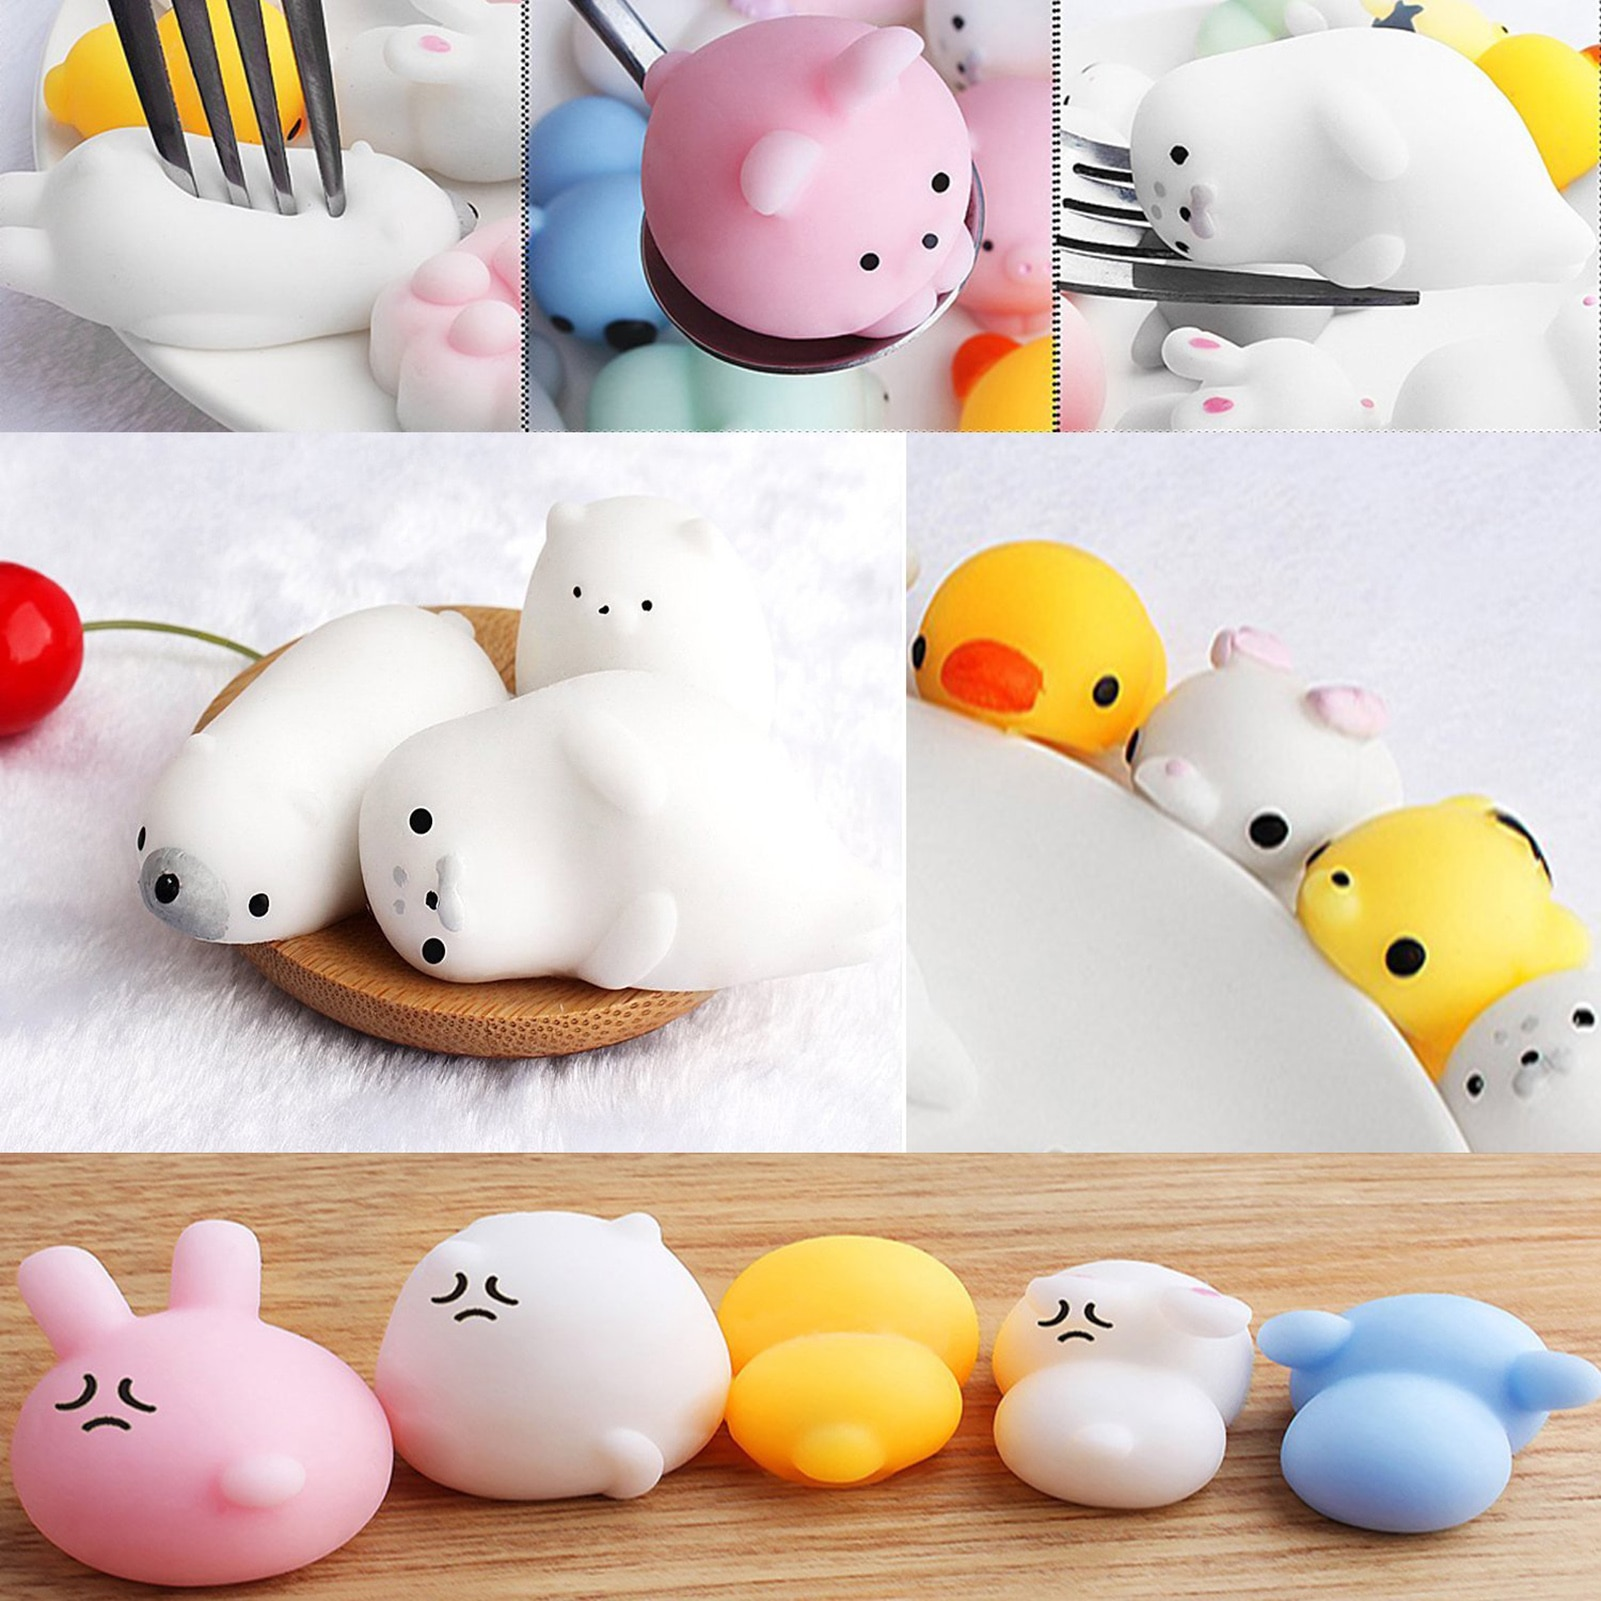 24 PCS Squeeze Toys Cute Stress Relief Animal Squeeze Toy Lovely Squishy Decompression Animals Squeezing Animals enlarge